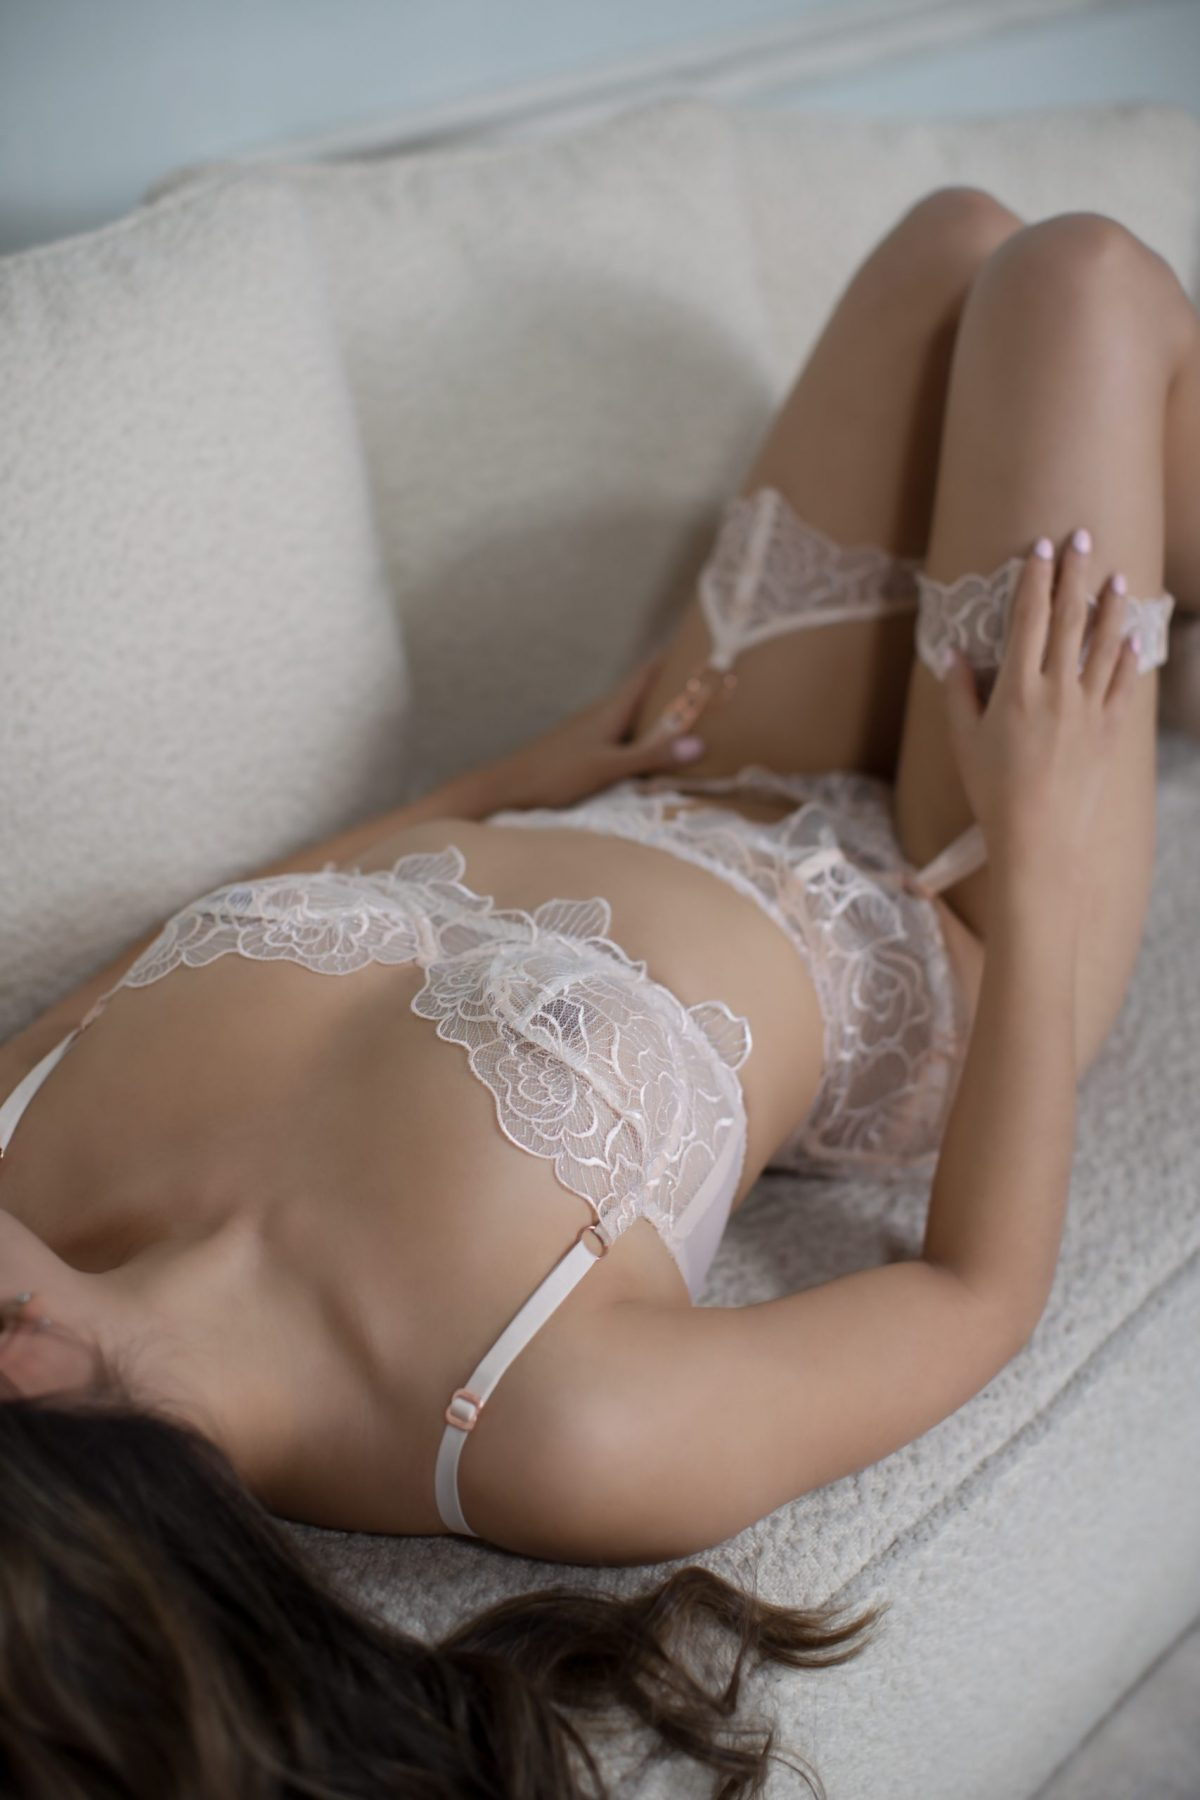 Toronto escorts companion upscale Devyn Interests Duo Couple-friendly Non-smoking Age Young Figure Petite Breasts Natural Hair Raven-Haired Ethnicity Asian Tattoos None Arrival